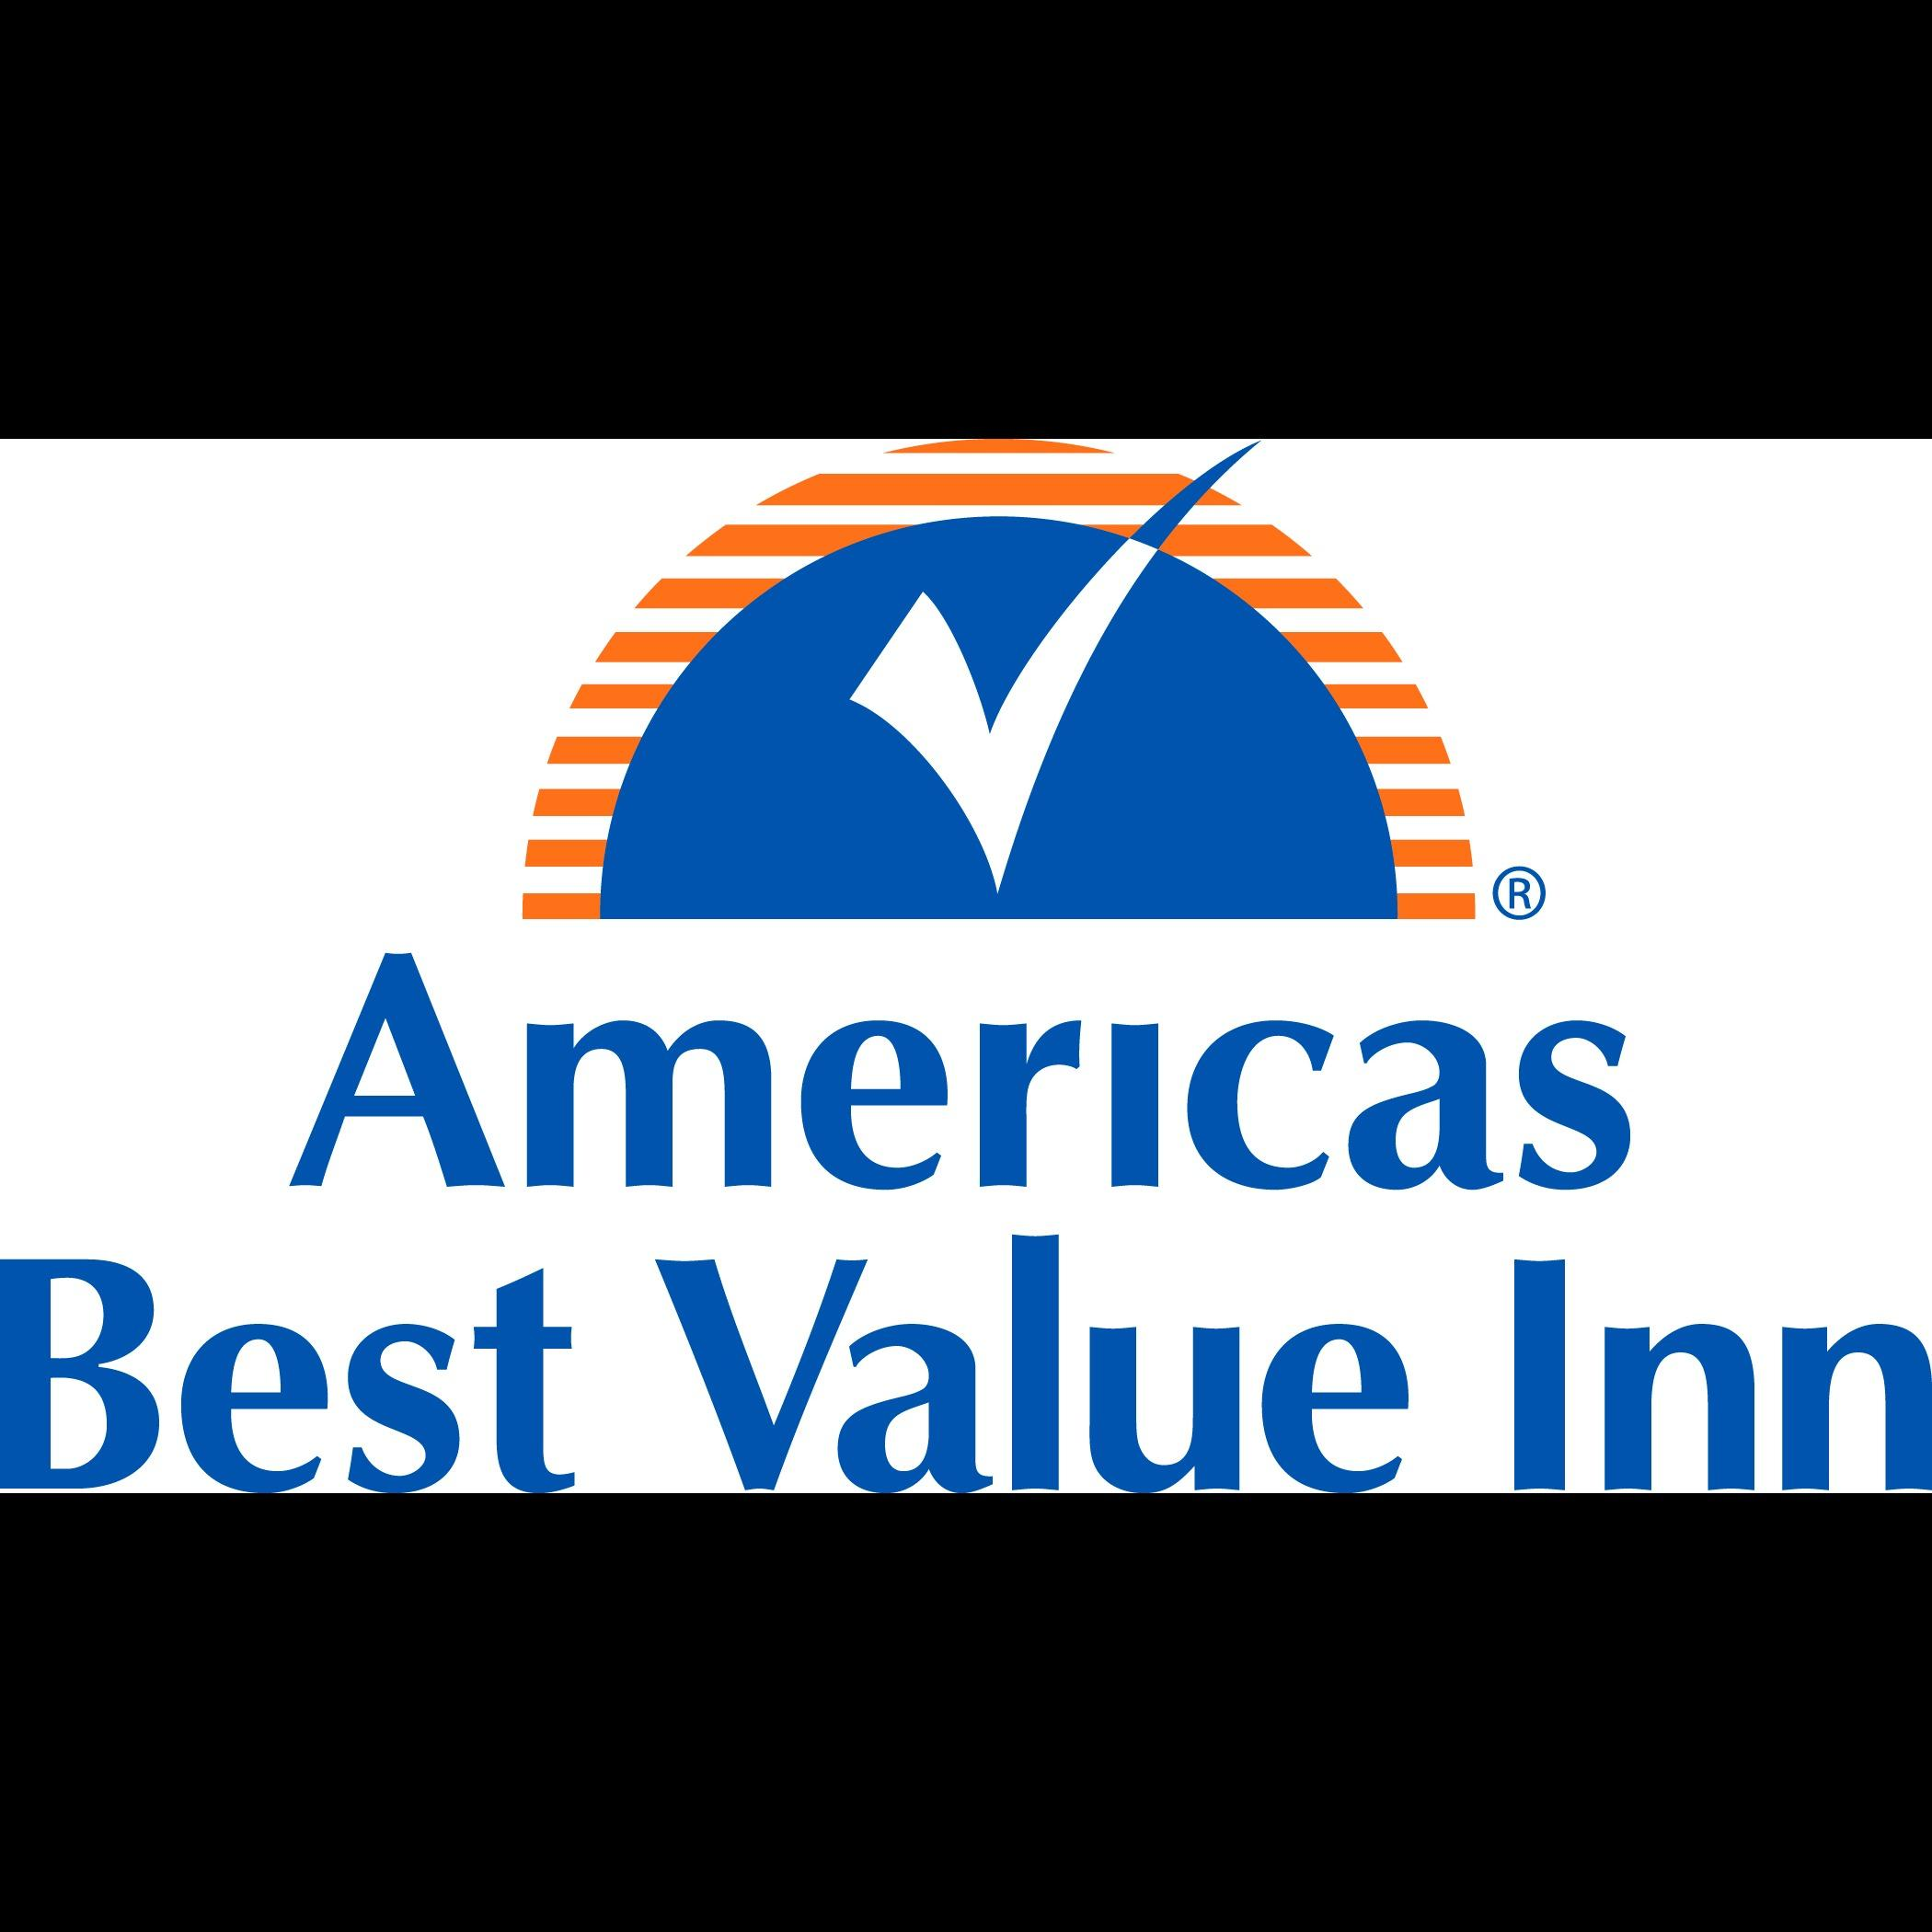 Americas Best Value Inn - Carlisle, PA - Hotels & Motels